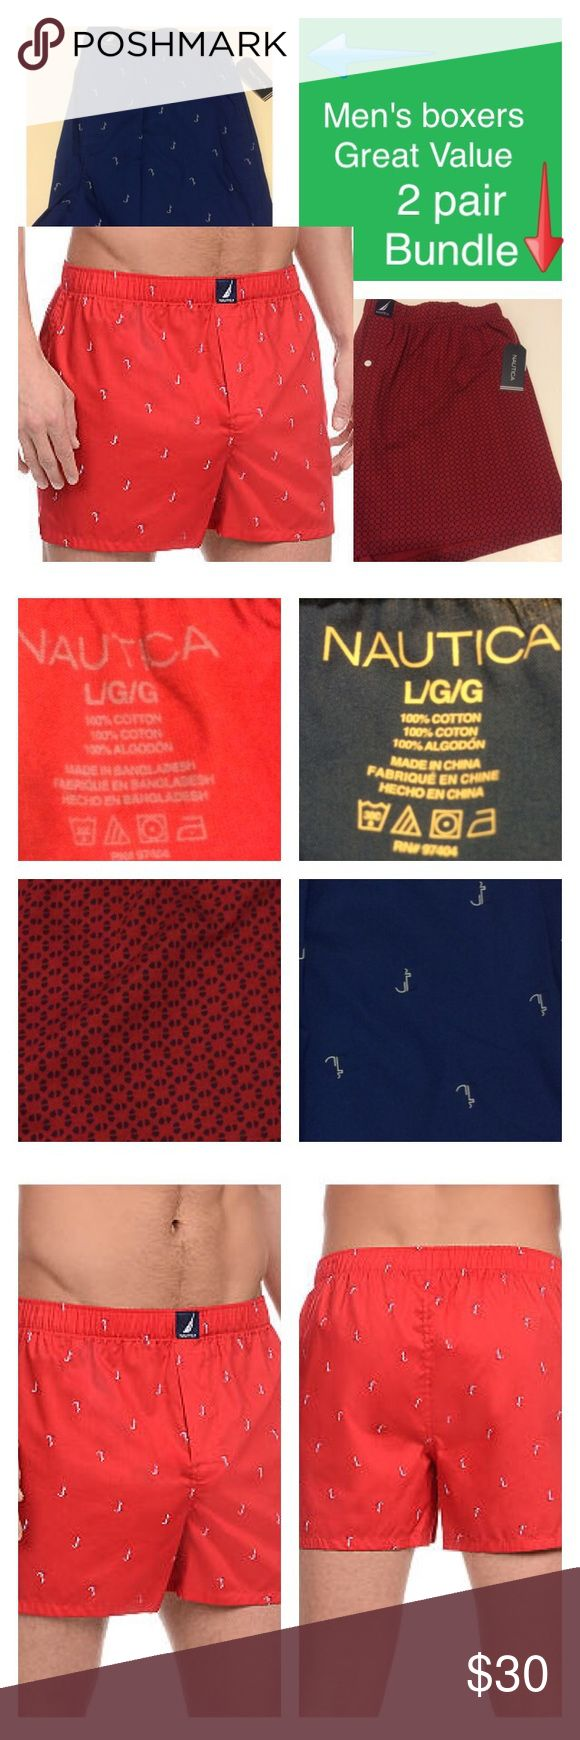 Men's nautica boxer bundle Elevate your essentials collection with this tag-free pair. Crafted with a novelty print and comfortable woven fabrication you'll love, these boxers are the perfect wardrobe staple. Stay sleek and discreet for all-day wear in this essential style. 14.75-in. outseam; 4.5-in. inseam Hidden elastic waistband Single button fly Tag-free 100%Cotton Machine washable Nautica Underwear & Socks Boxers